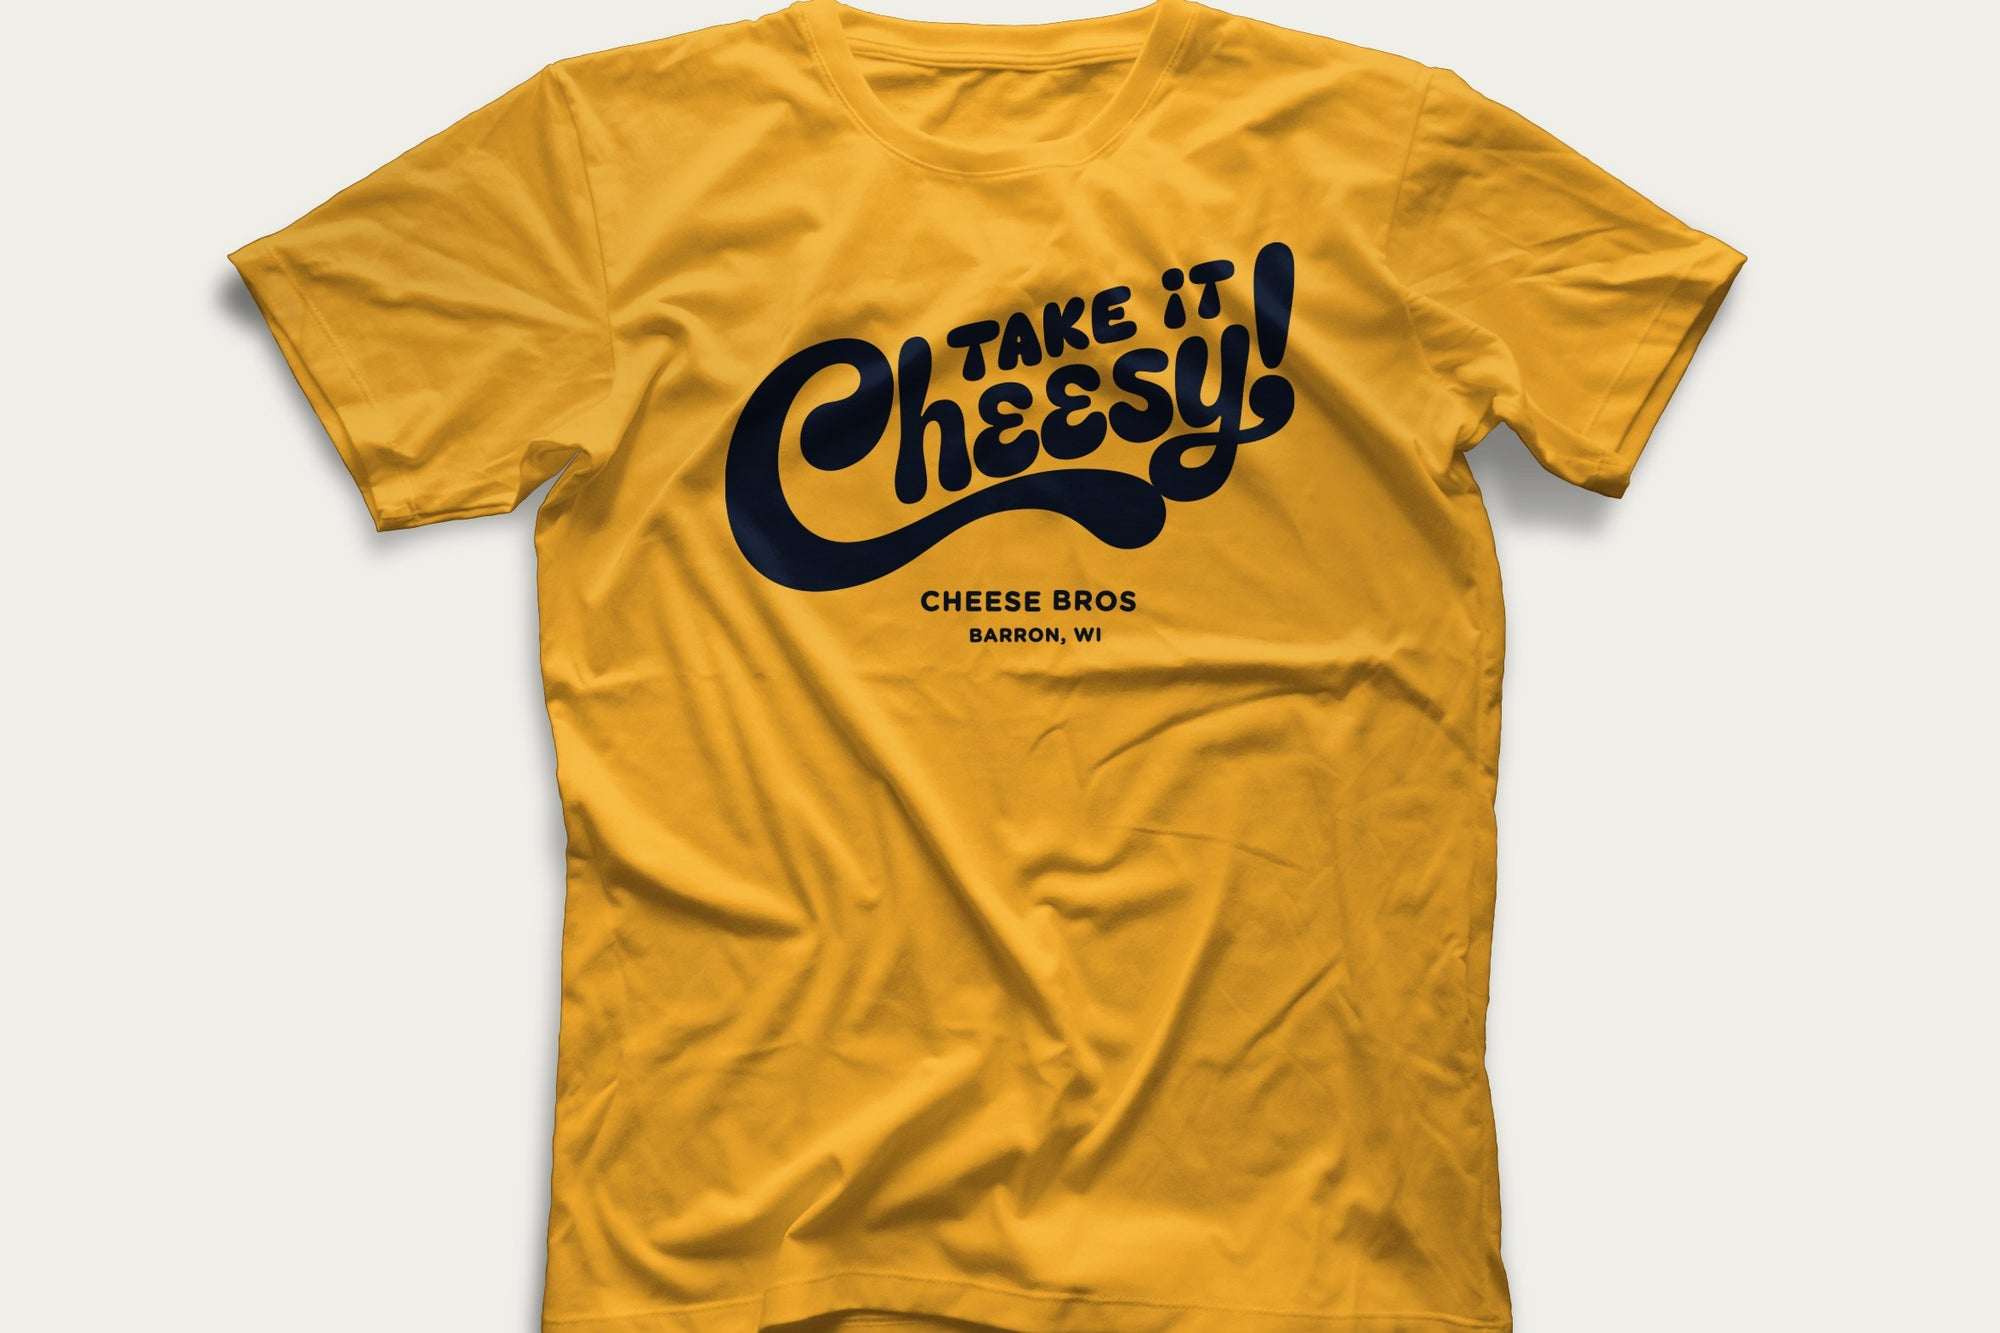 Take It Cheesy Tee